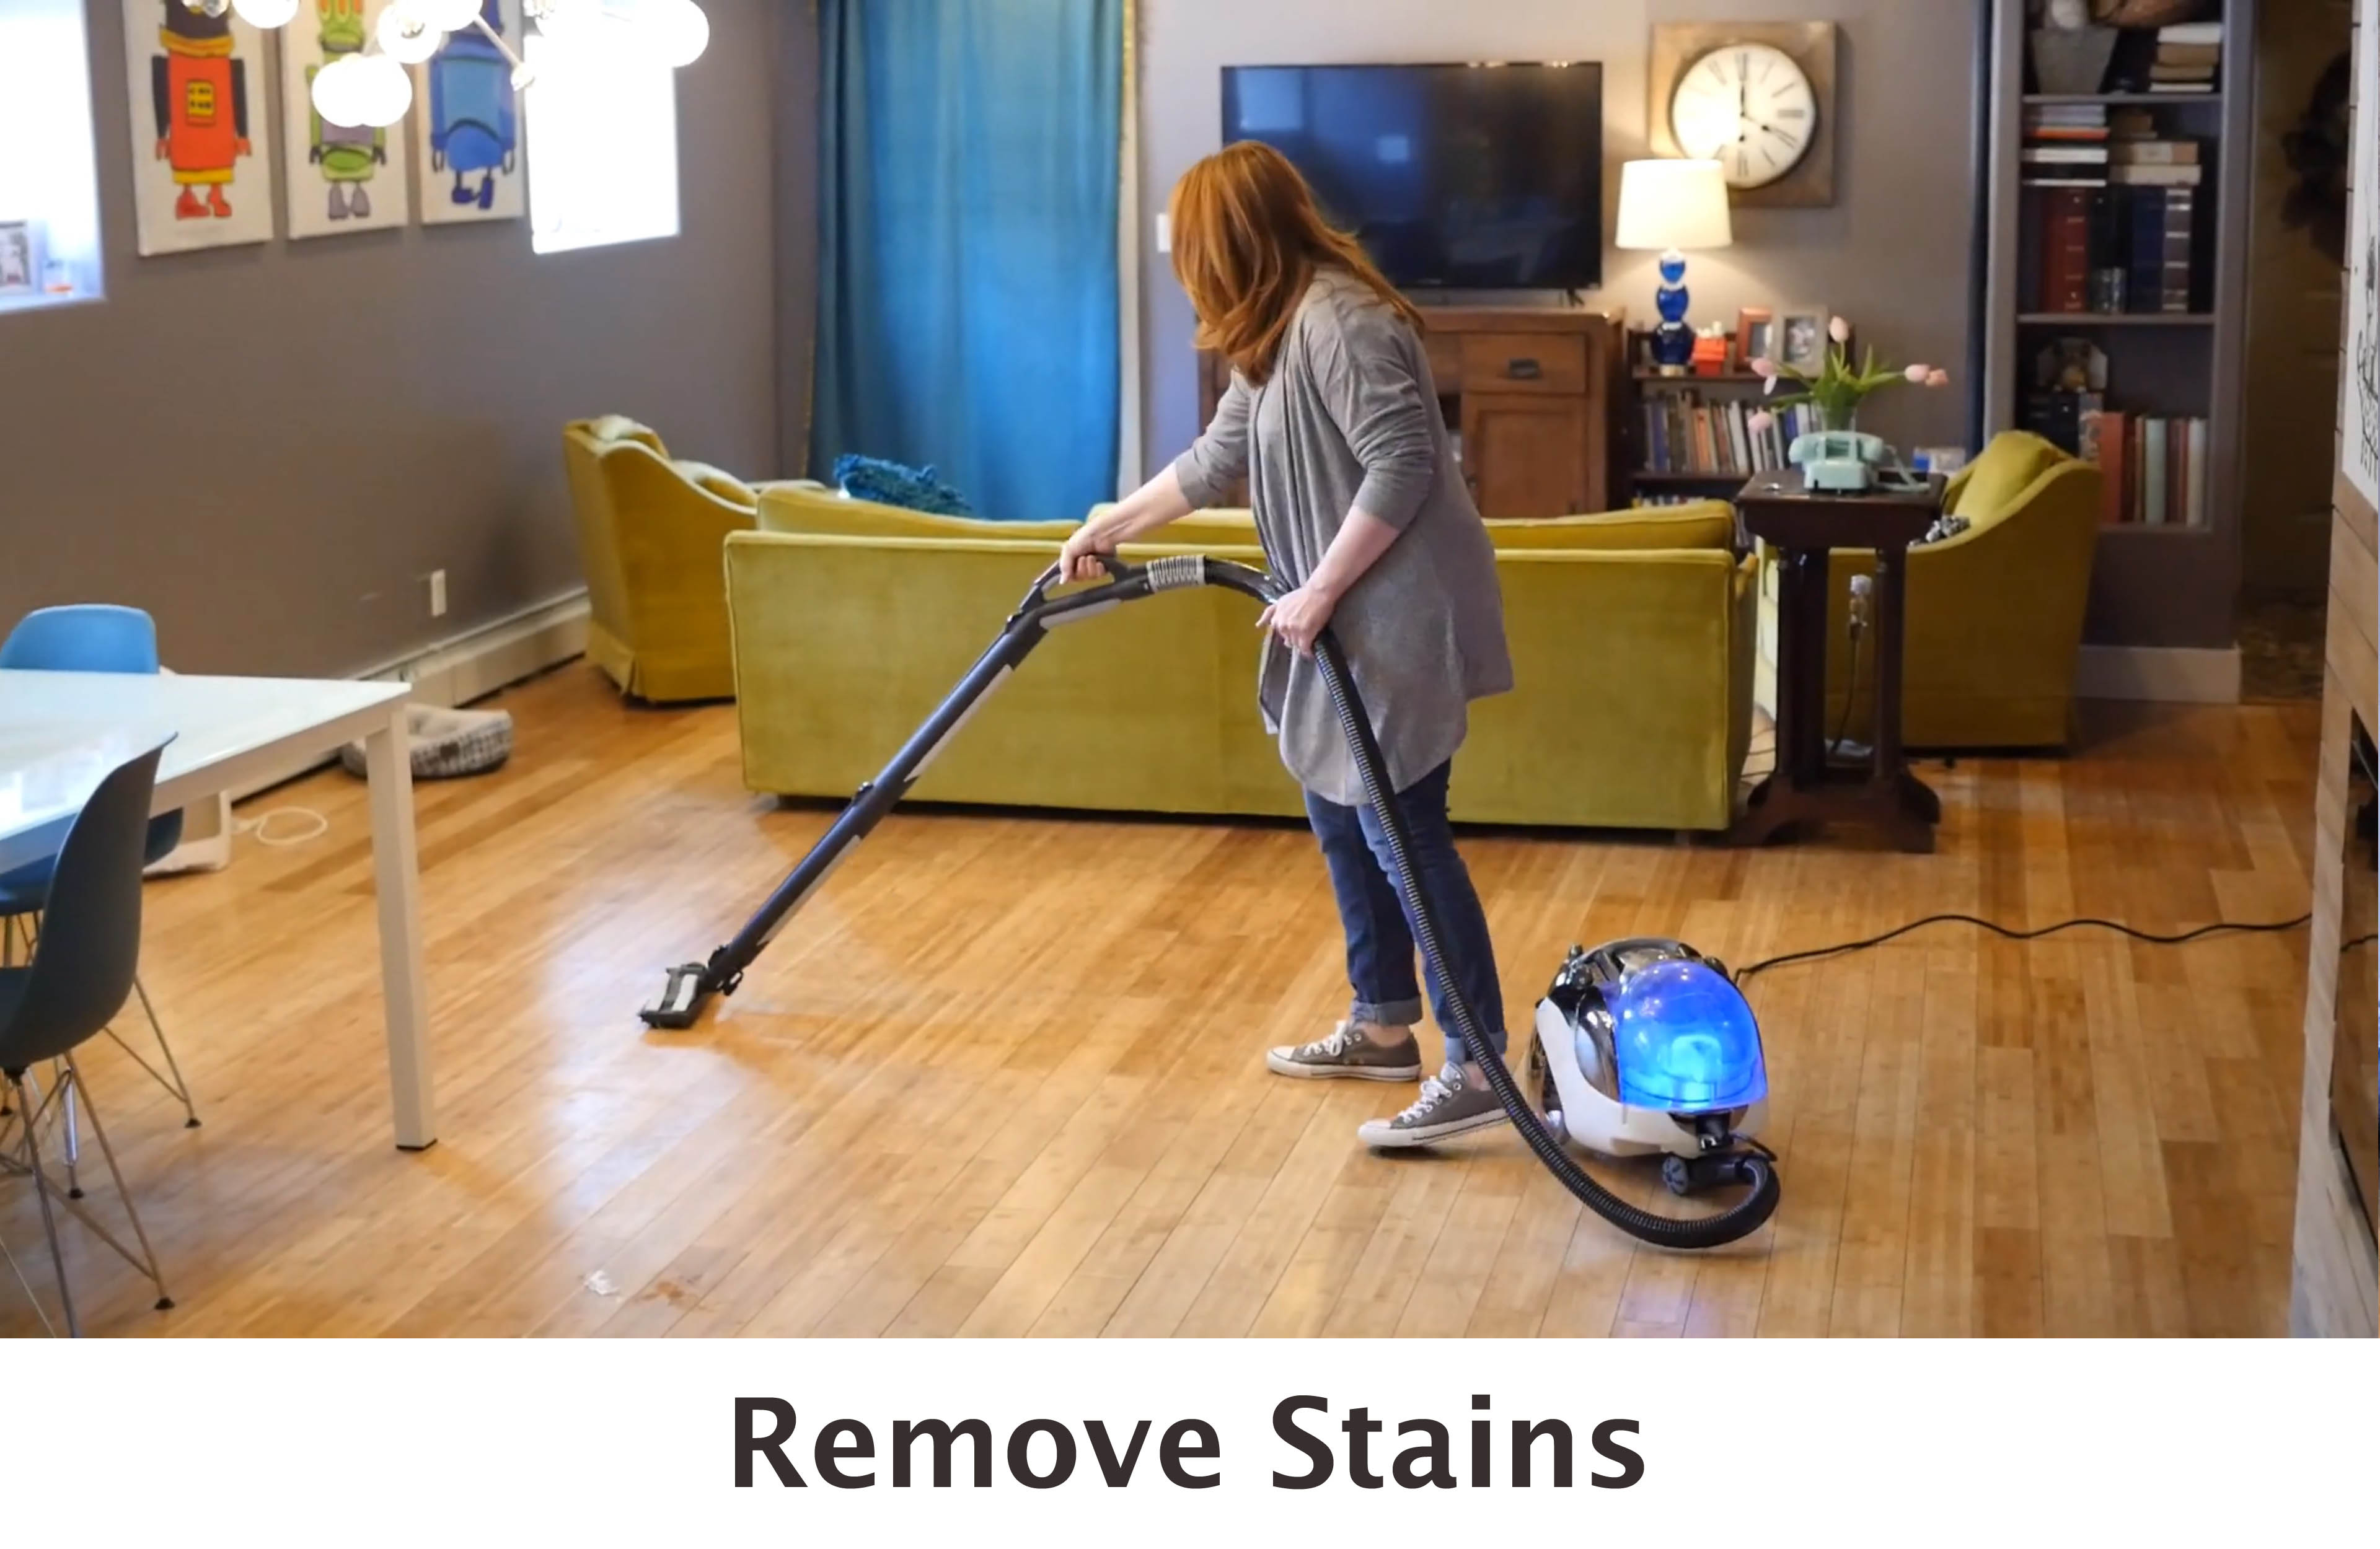 woman using Steam Rover on bamboo wood floors